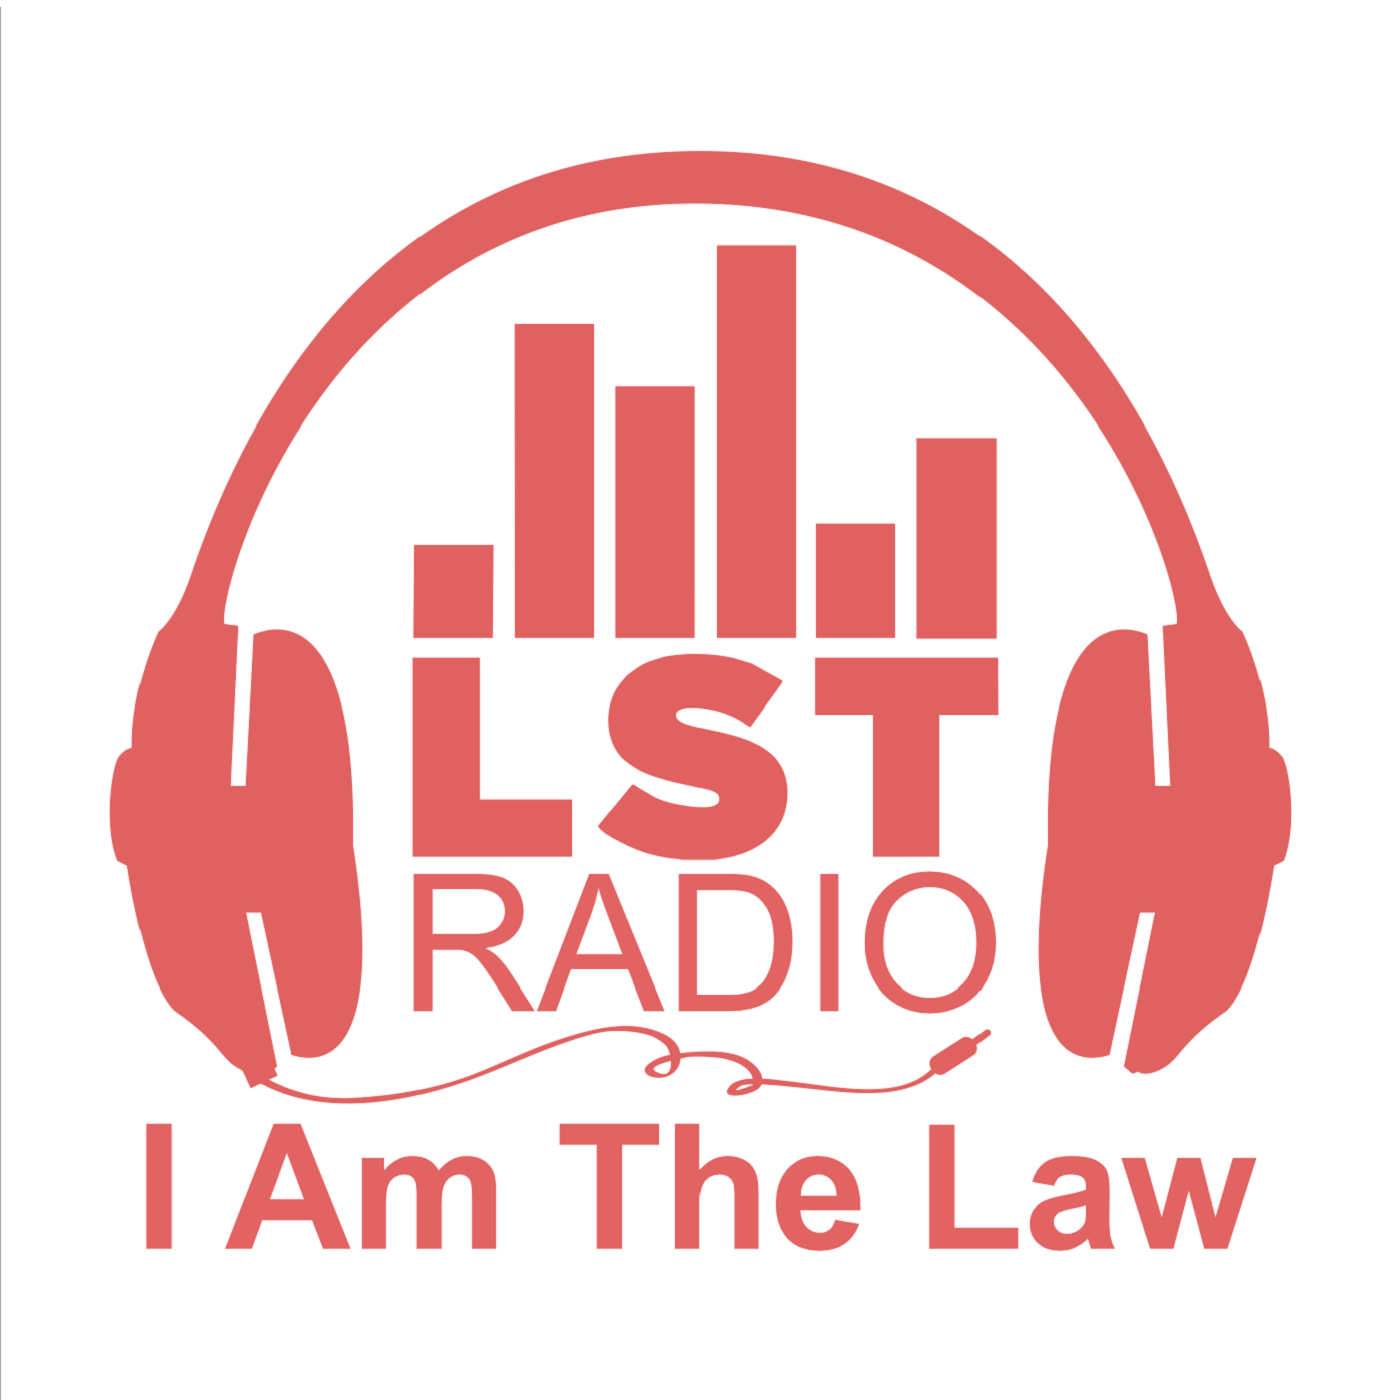 LST's I Am The Law show art